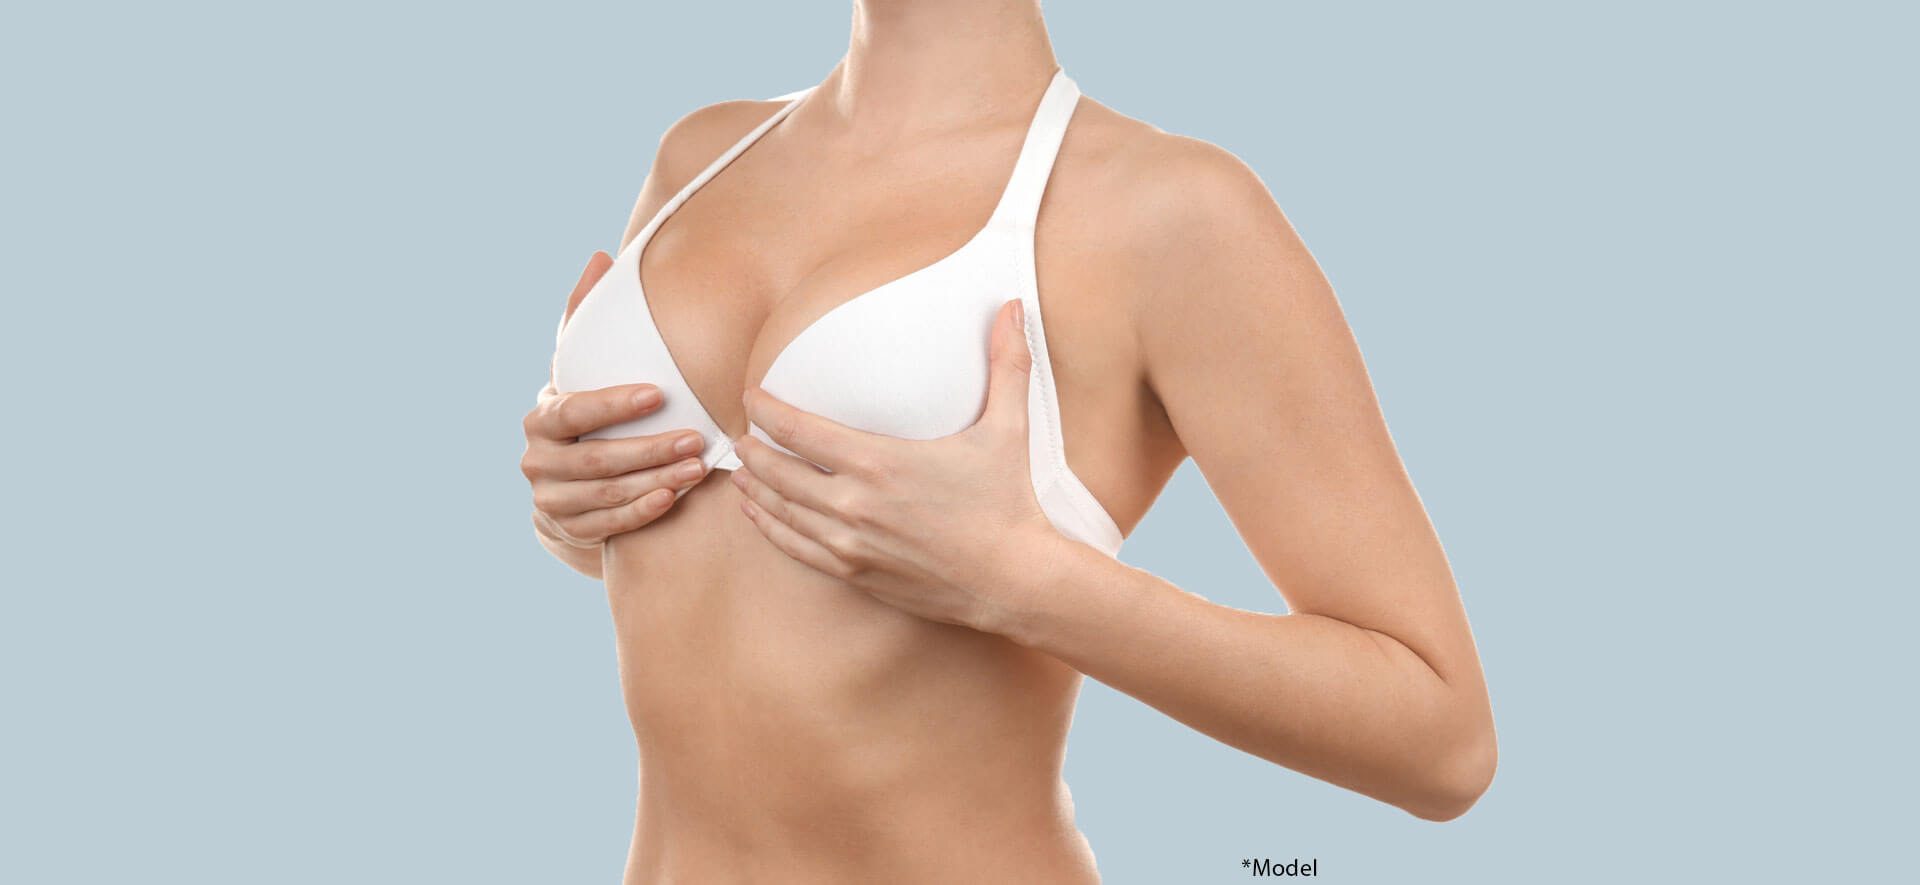 Woman lifting her breasts. Plastic surgery concept